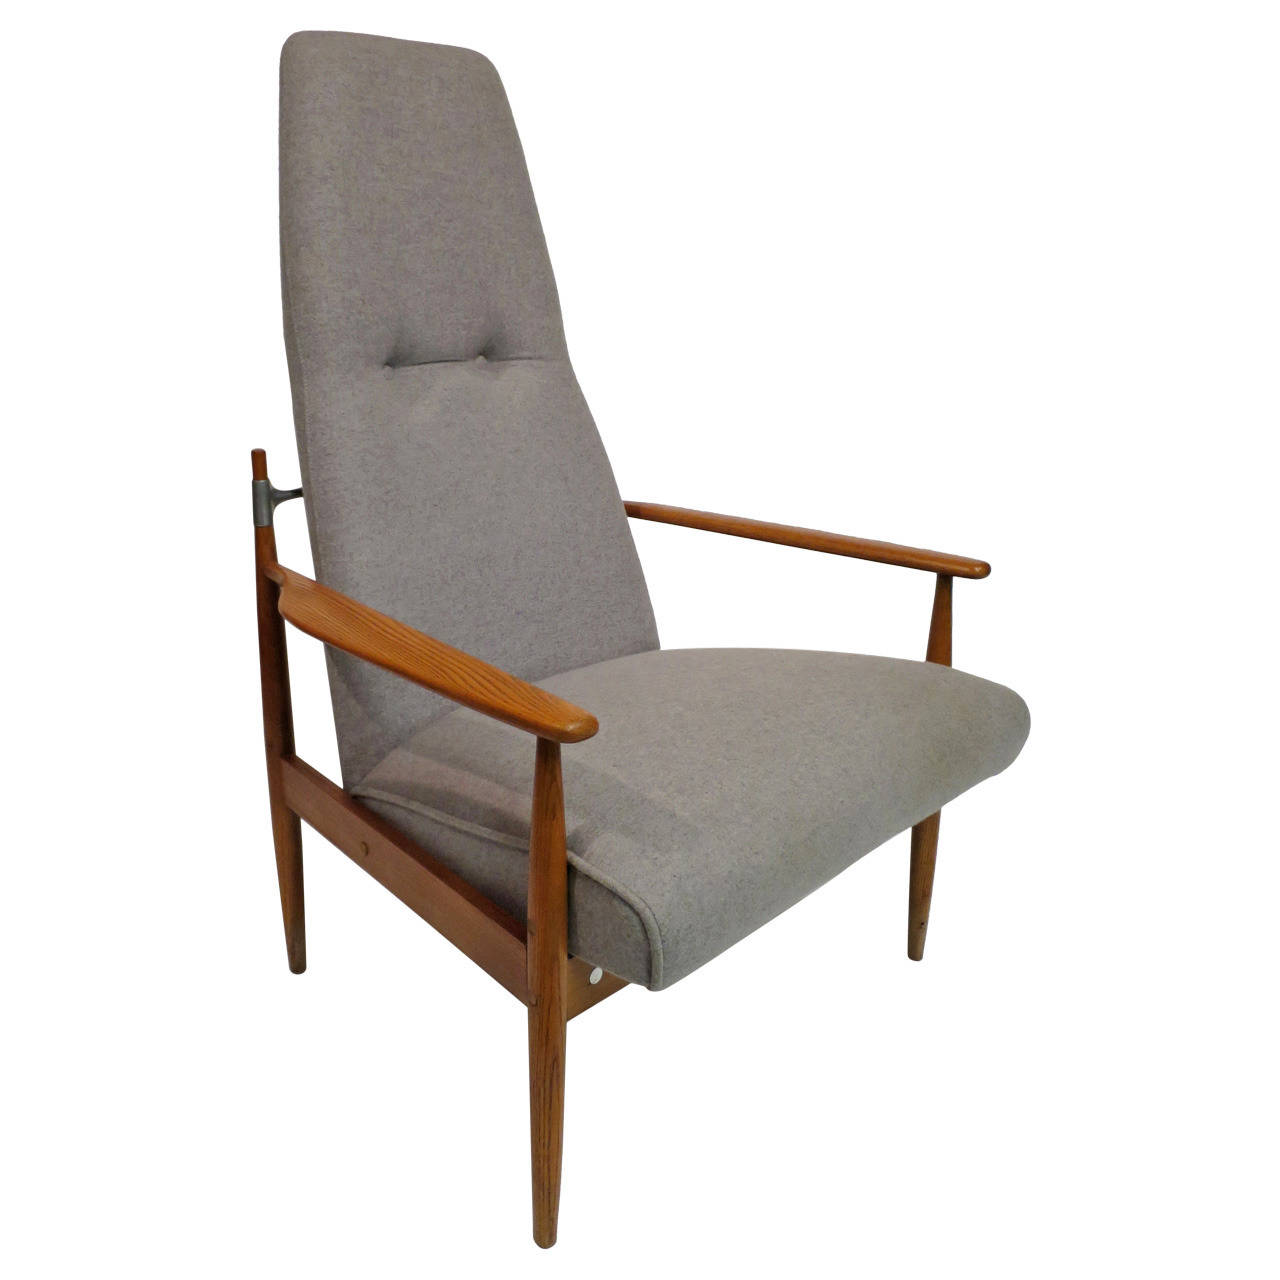 Image of: Good Mid Century Lounge Chair